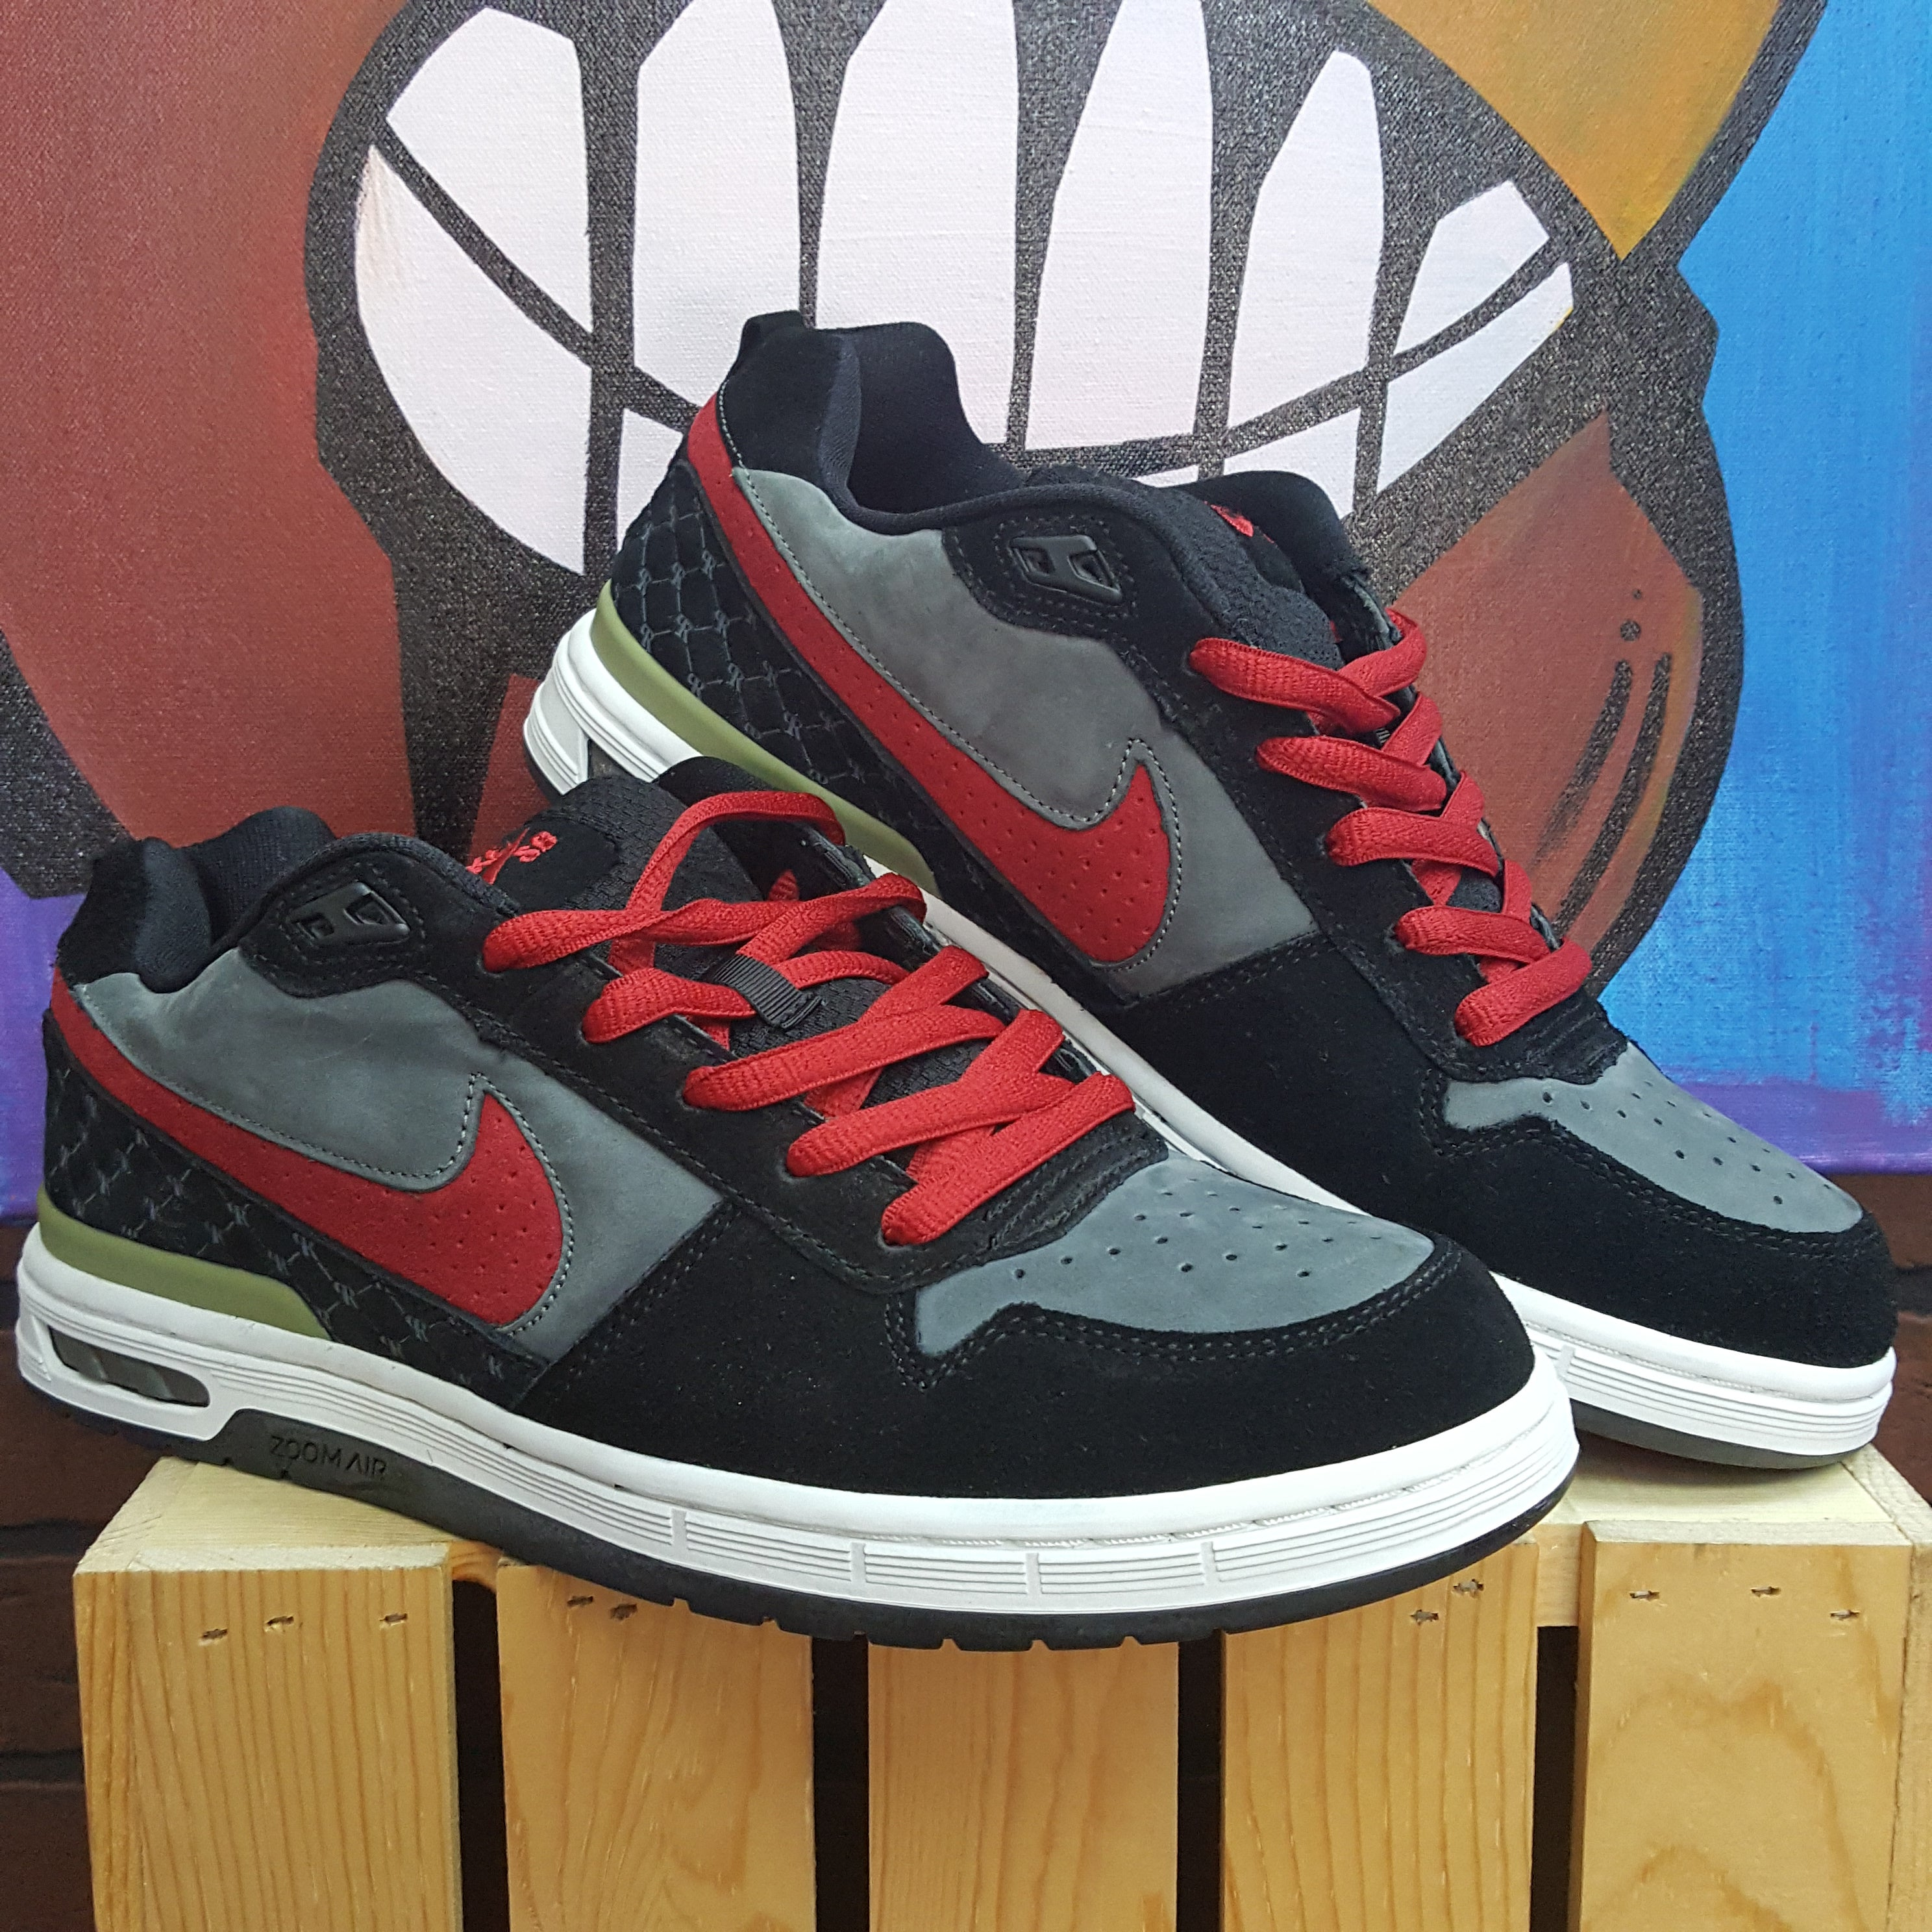 c22bb1f4a638f ... official nike sb zoom air low dunks paul rodriguez size 11.5 5336f 7214a